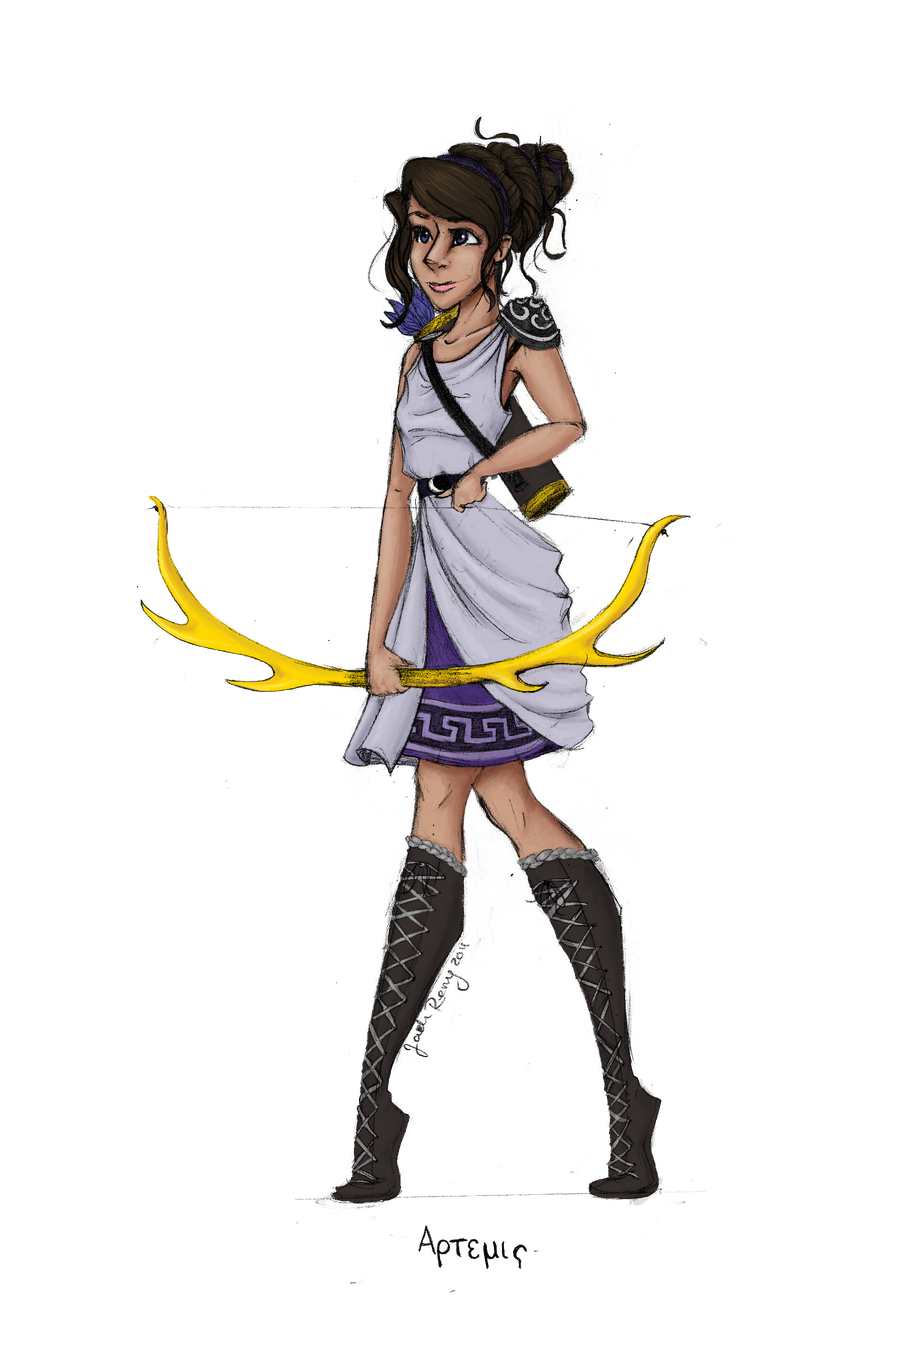 Hera Greek Goddess Cartoon Cartoon goddess greek